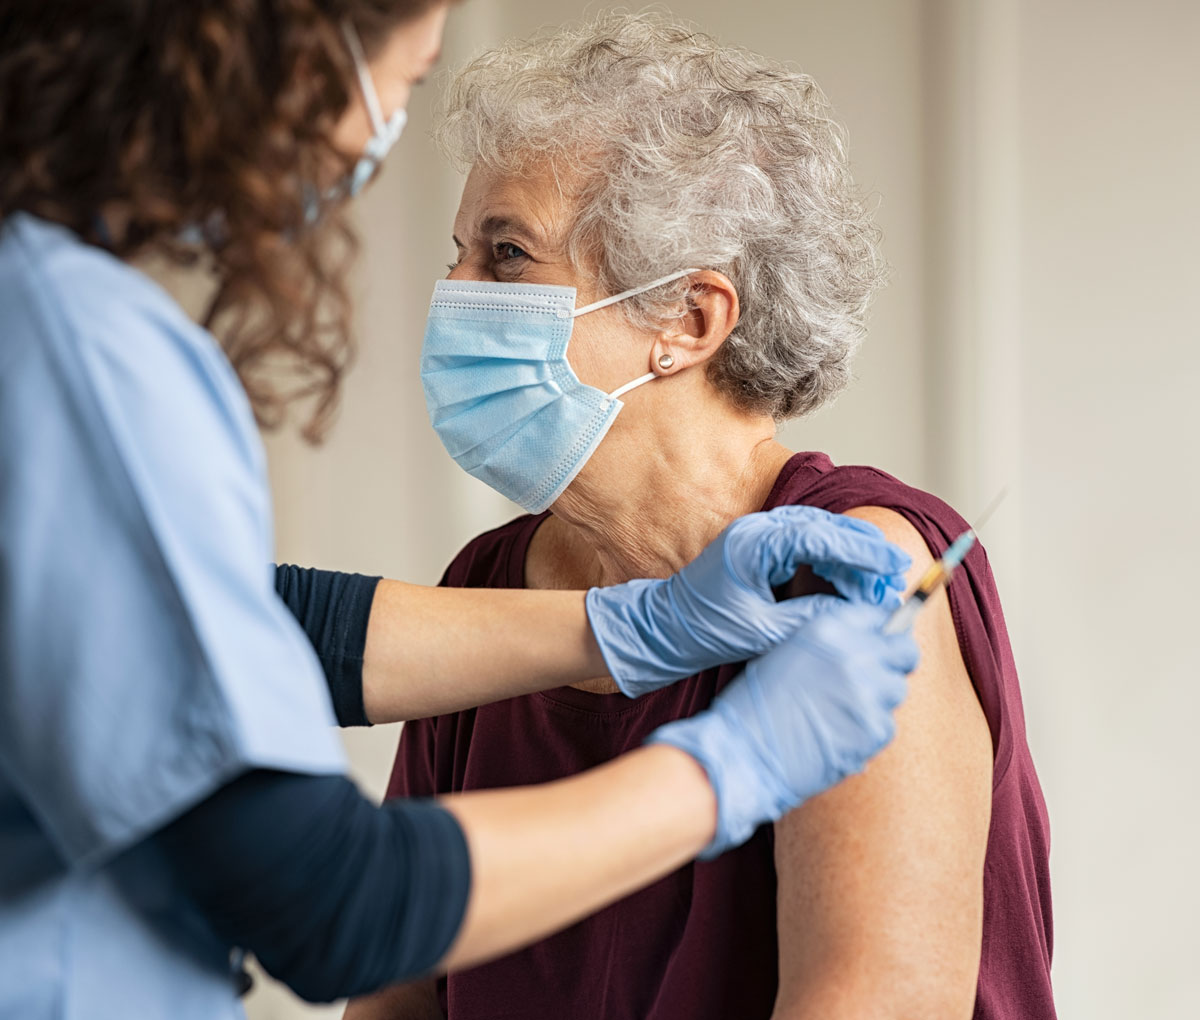 COVID-19, Vaccinations and the Safety of Our Community